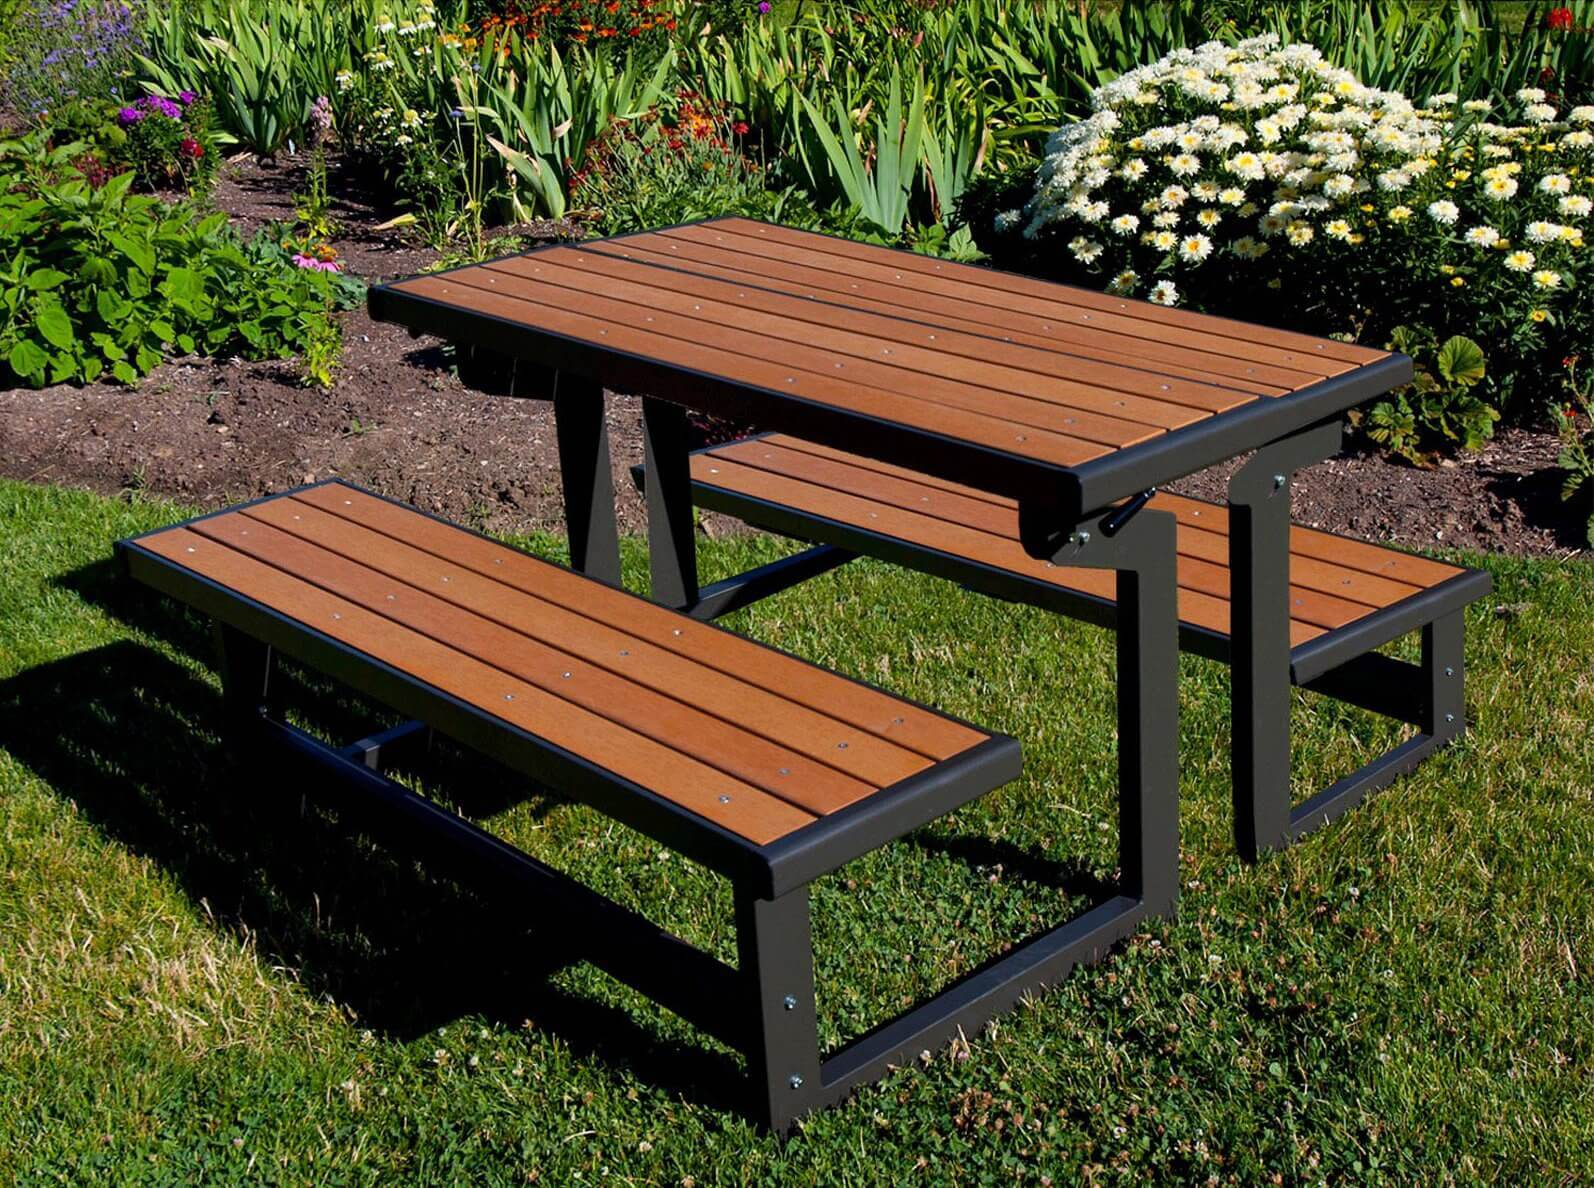 This mid range picnic table is sleek and stylish. The rich wood tones match well with the black iron look of the metal. This is a fantastic picnic table choice if you have limited space or only need seating for up to four people.